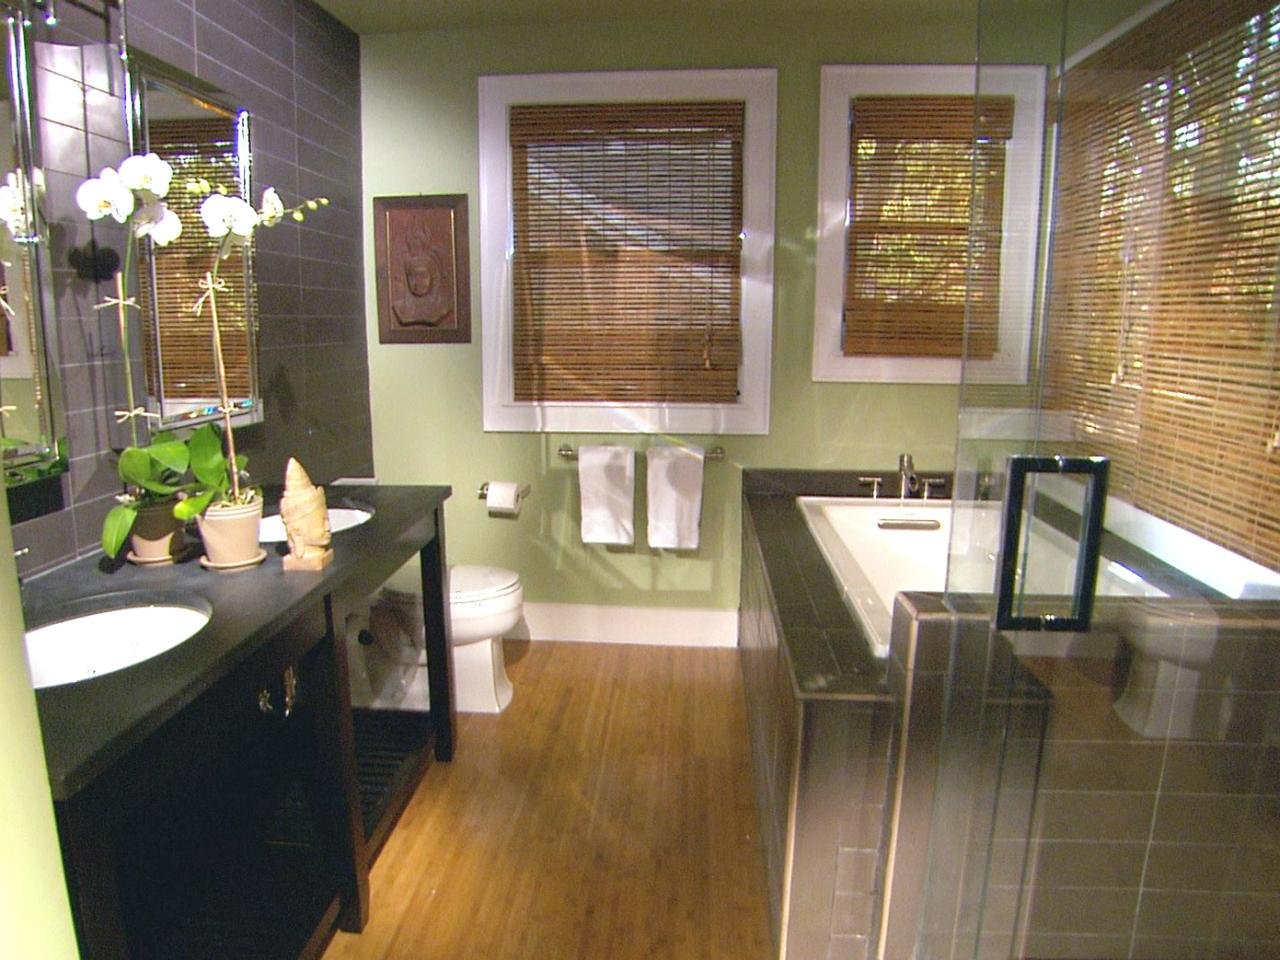 Hgtv Bathroom Remodel